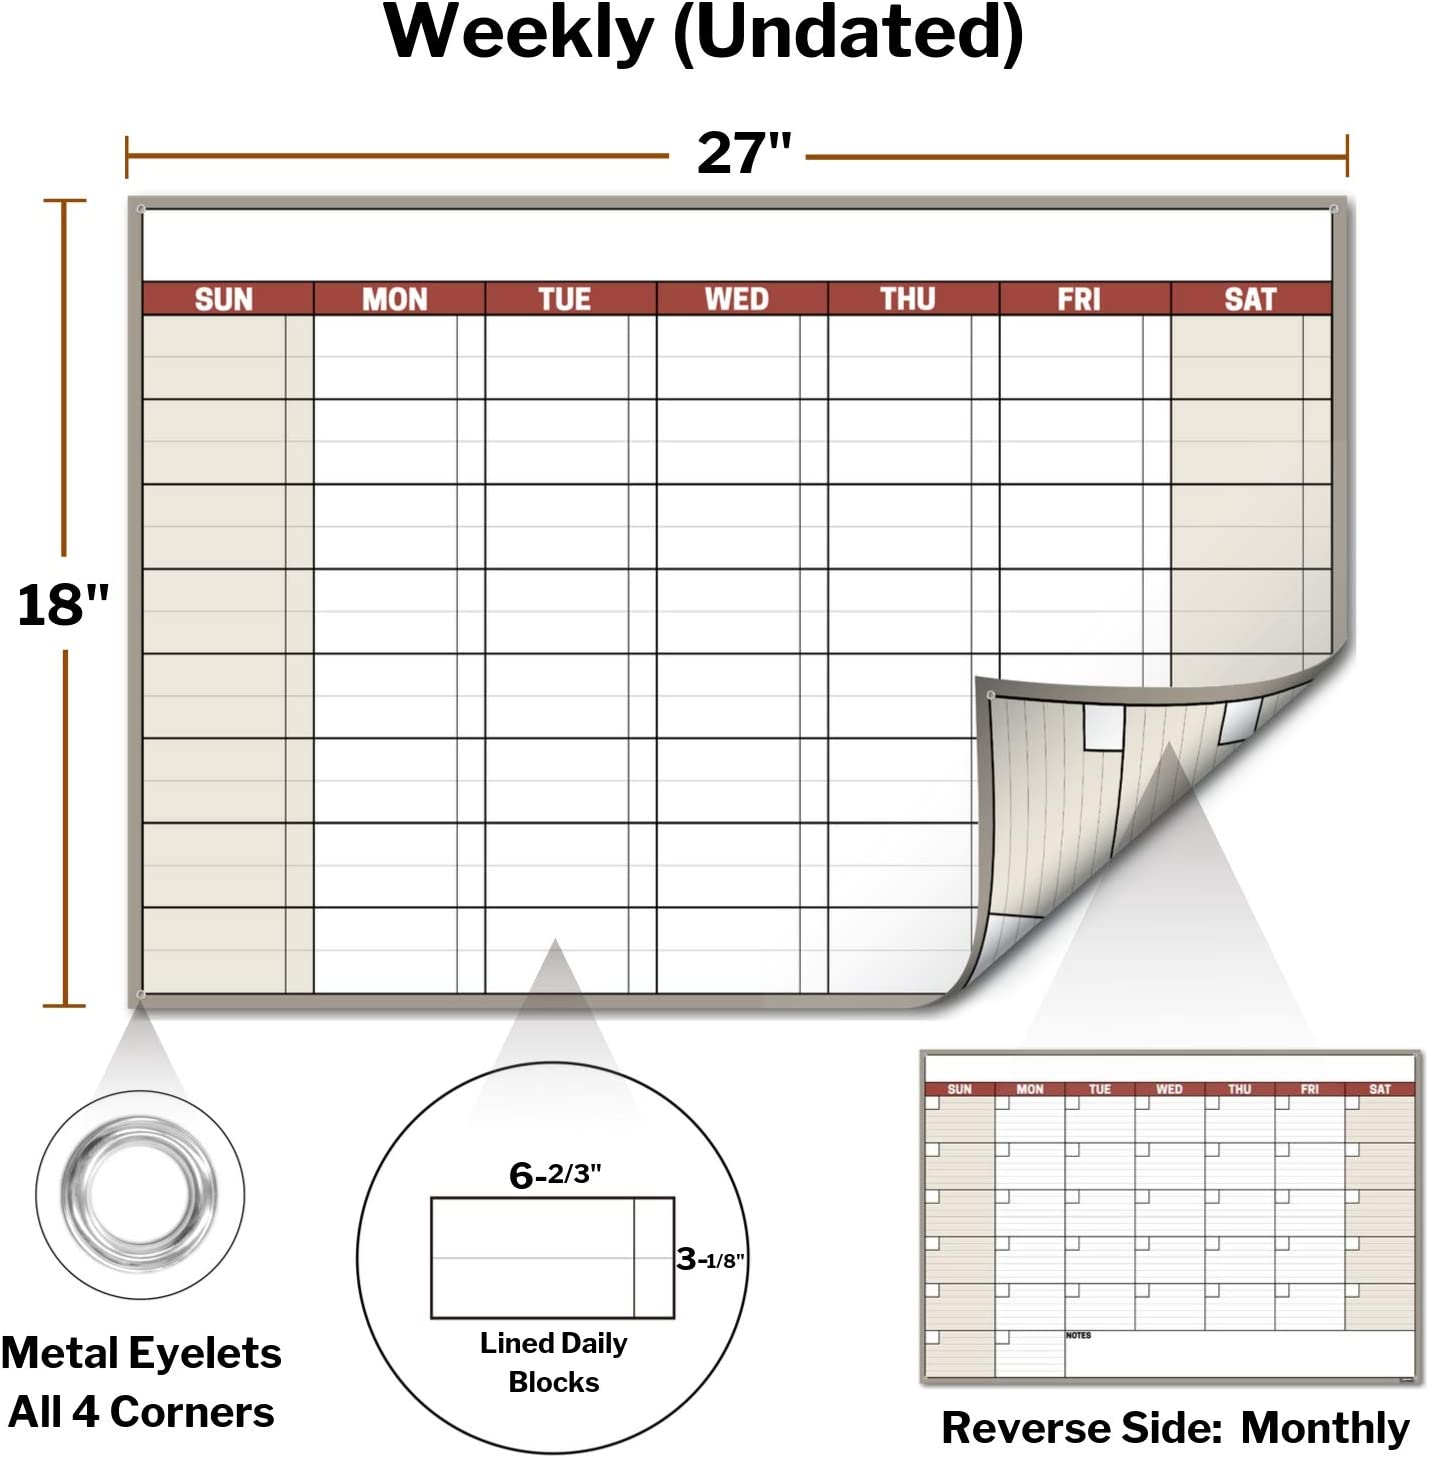 Laminated Paper Wall Poster Calendar Reversible Reusable Wet and Dry Erase Monthly Weekly Planner 18x27 Erasable Undated Monthly Calendar for Wall Shipped Rolled Not Folded Brown